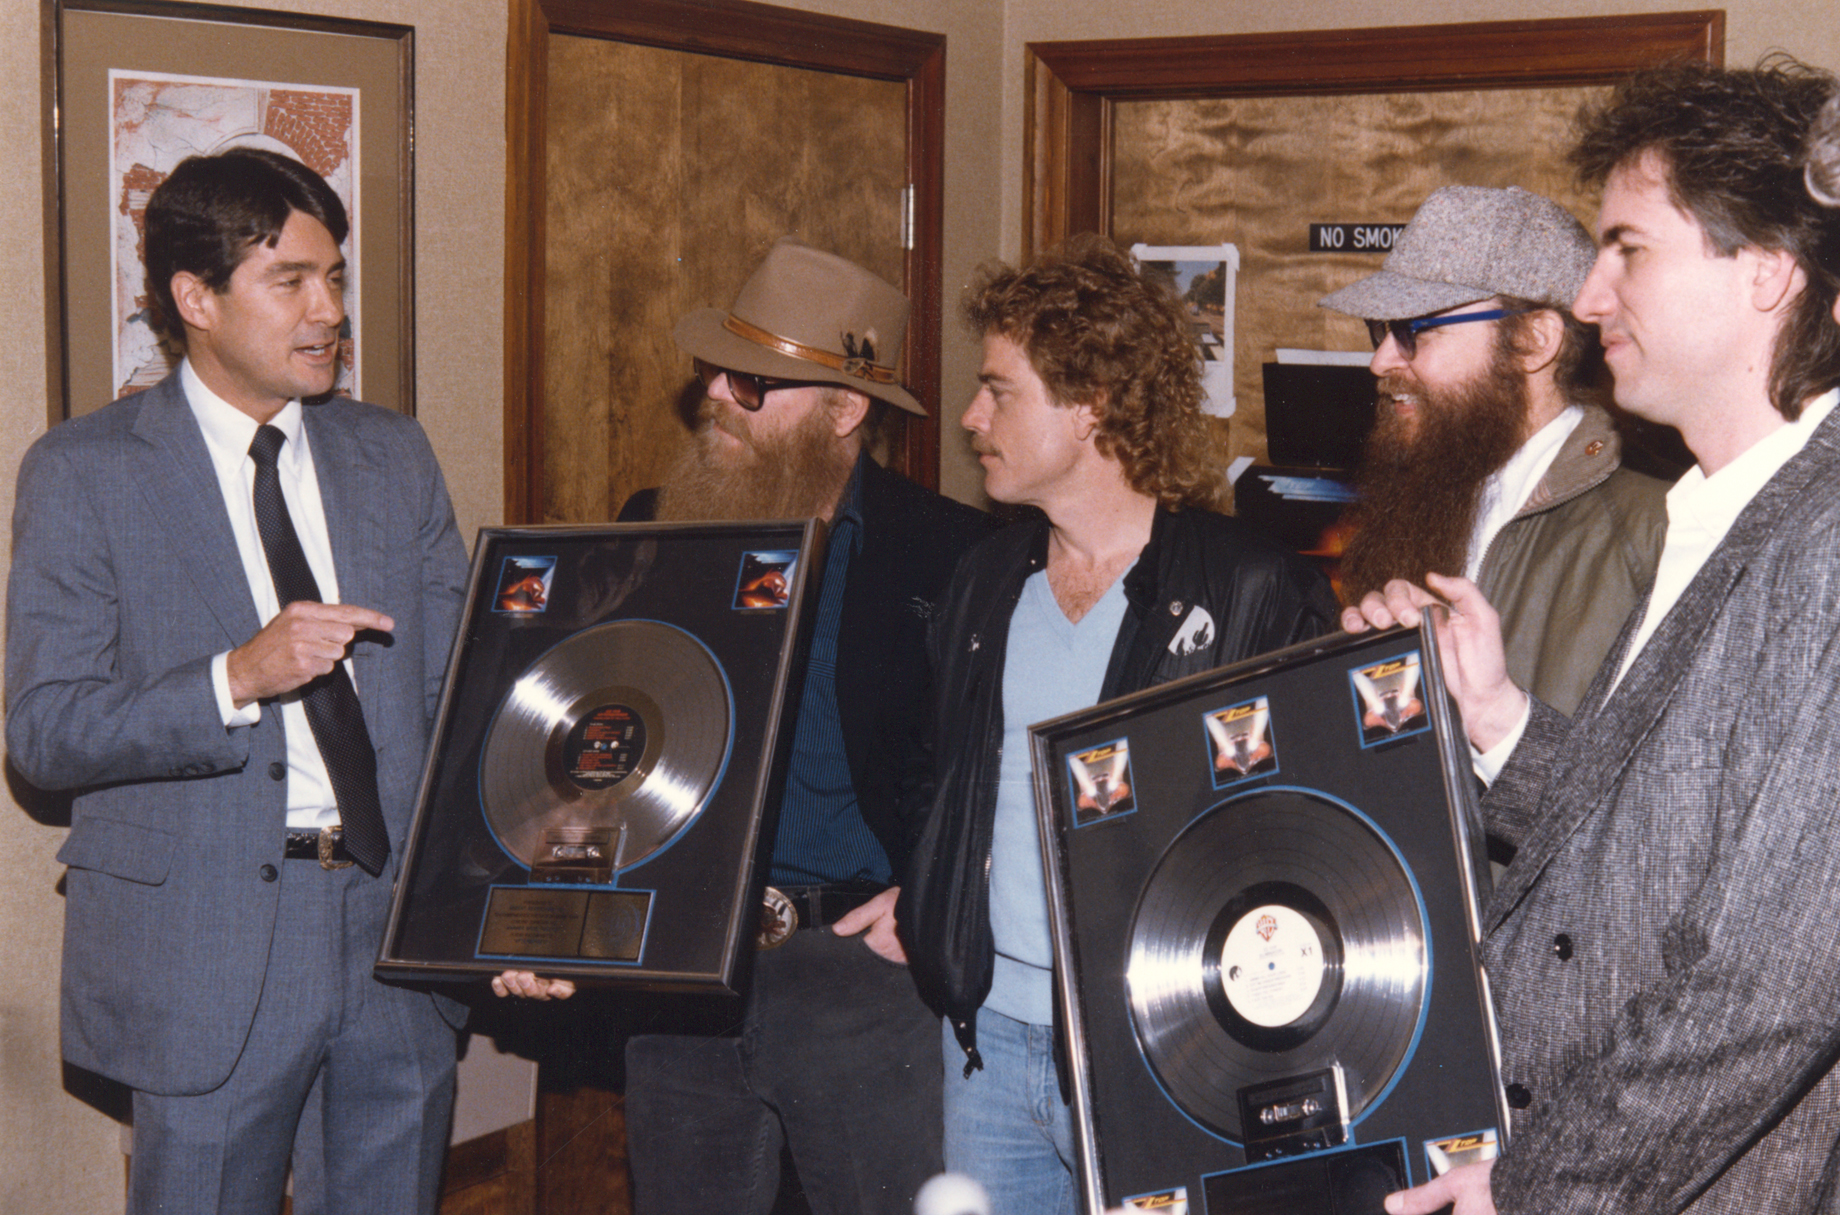 Ardent - John Fry presenting ZZ Top with Platinum records for their albums  Eliminator  and  Afterburner. L-R John Fry, Dusty Hill, Frank Beard, Billy Gibbons, and Joe HArdy (engineer, producer)